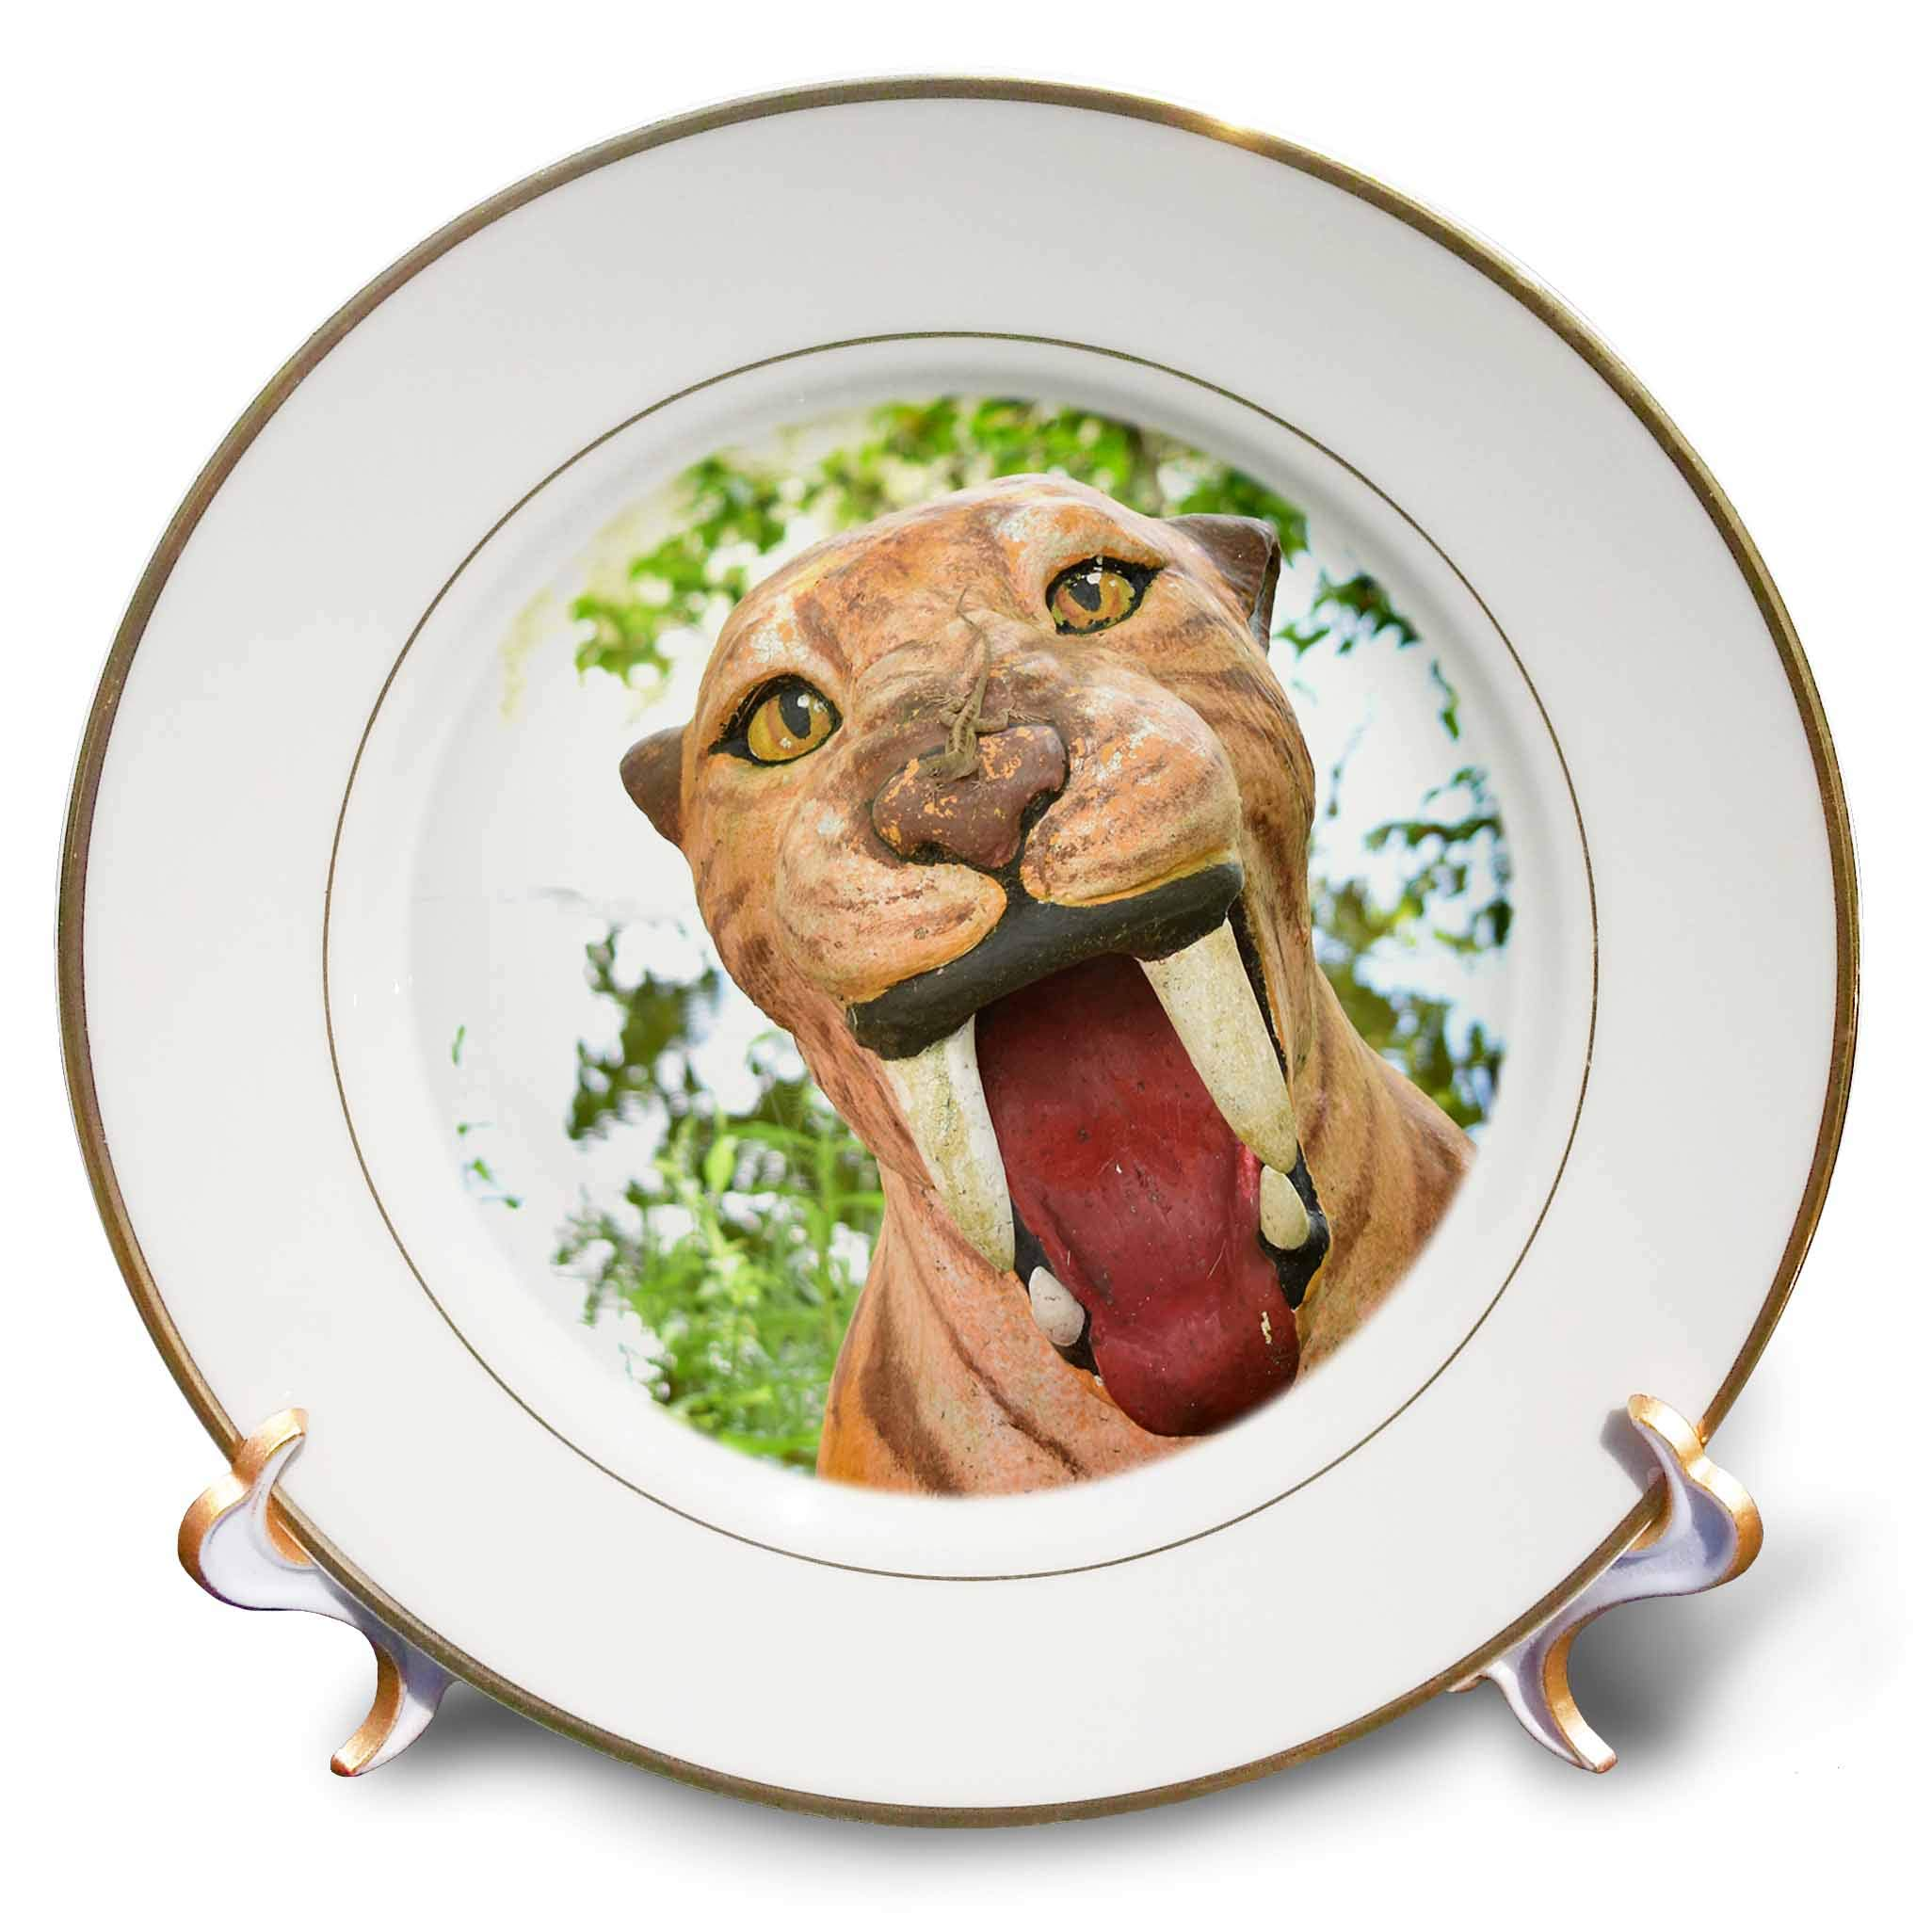 3dRose Susans Zoo Crew Animal - Saber Tooth Tiger Statue with Lizard - 8 inch Porcelain Plate (cp_294904_1)